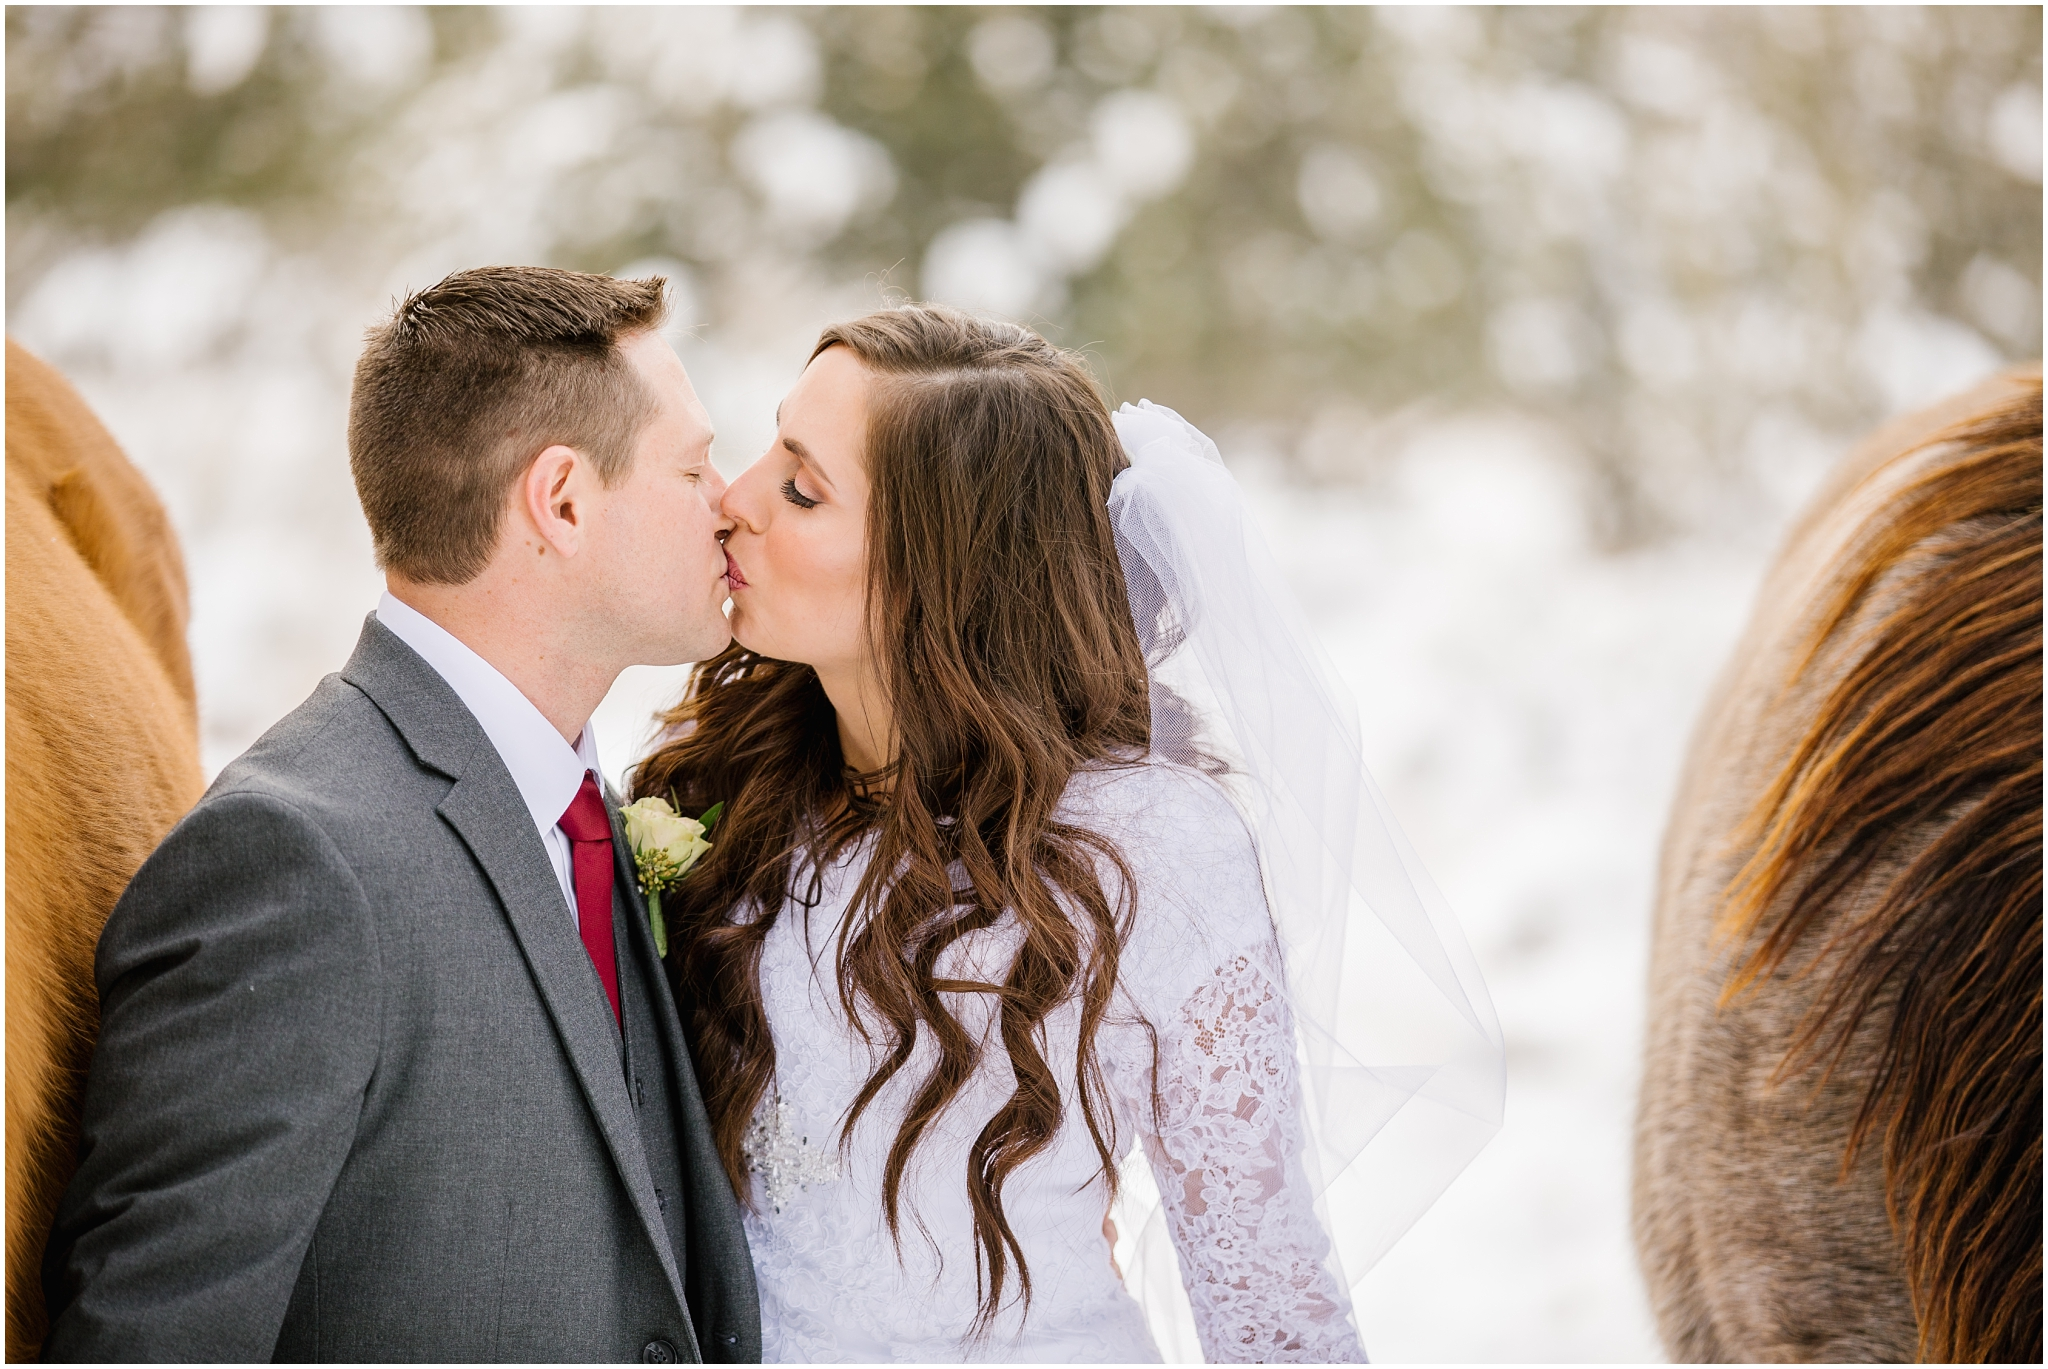 SSBridals-29_Lizzie-B-Imagery-Utah-Wedding-Photographer-Salt-Lake-City-Park-City-Logan-Utah-Temple.jpg